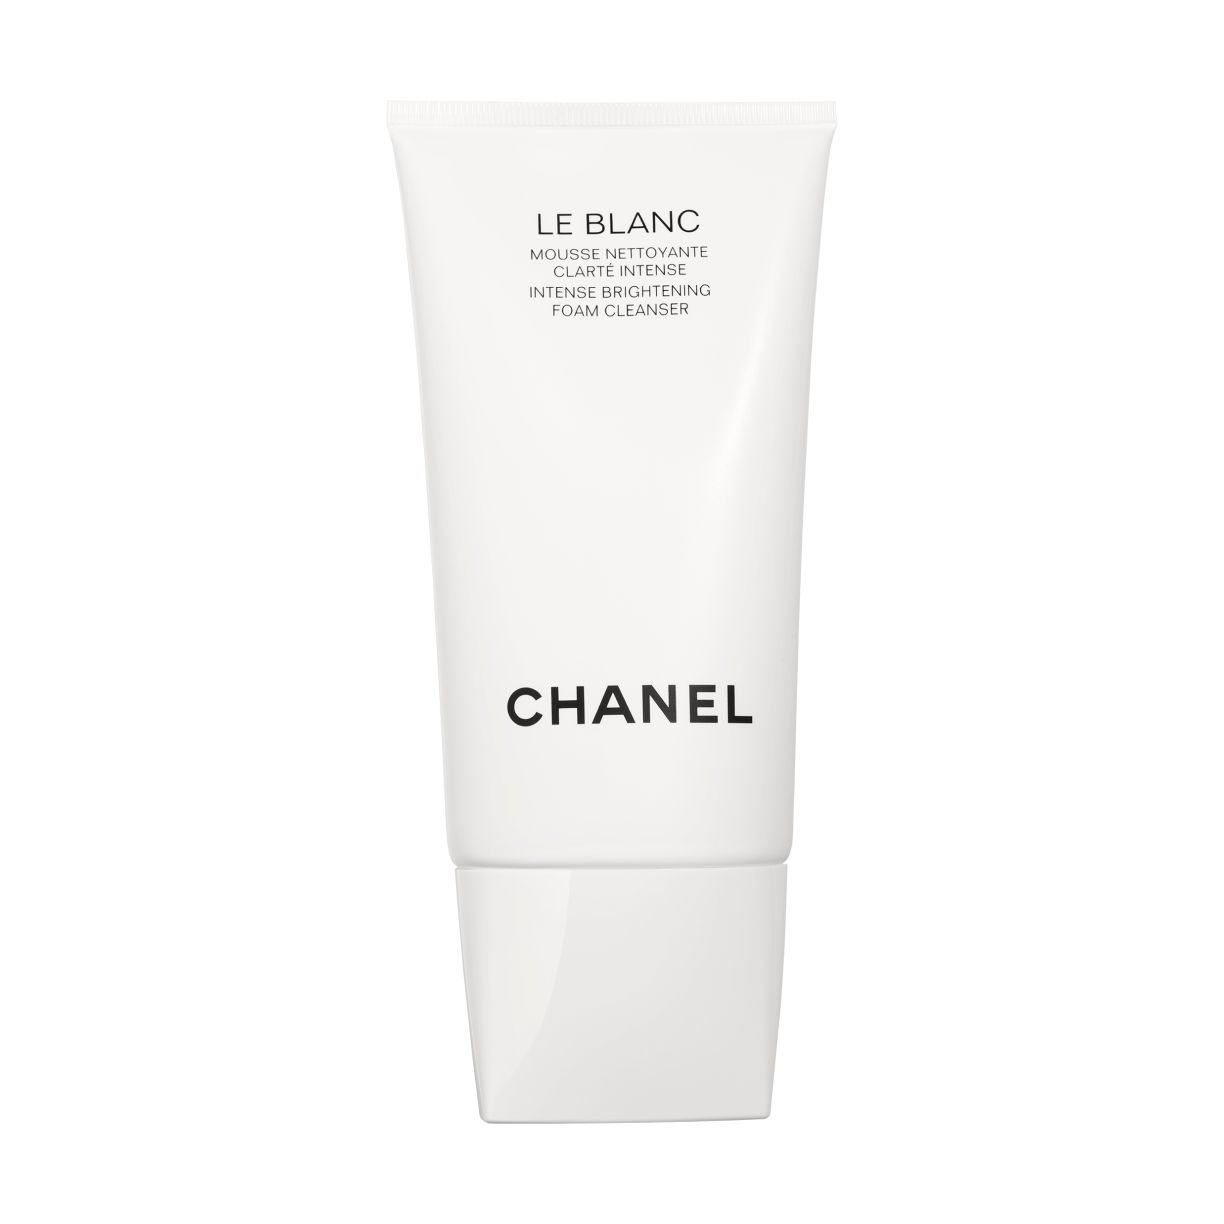 LE BLANC INTENSE BRIGHTENING FOAM CLEANSER